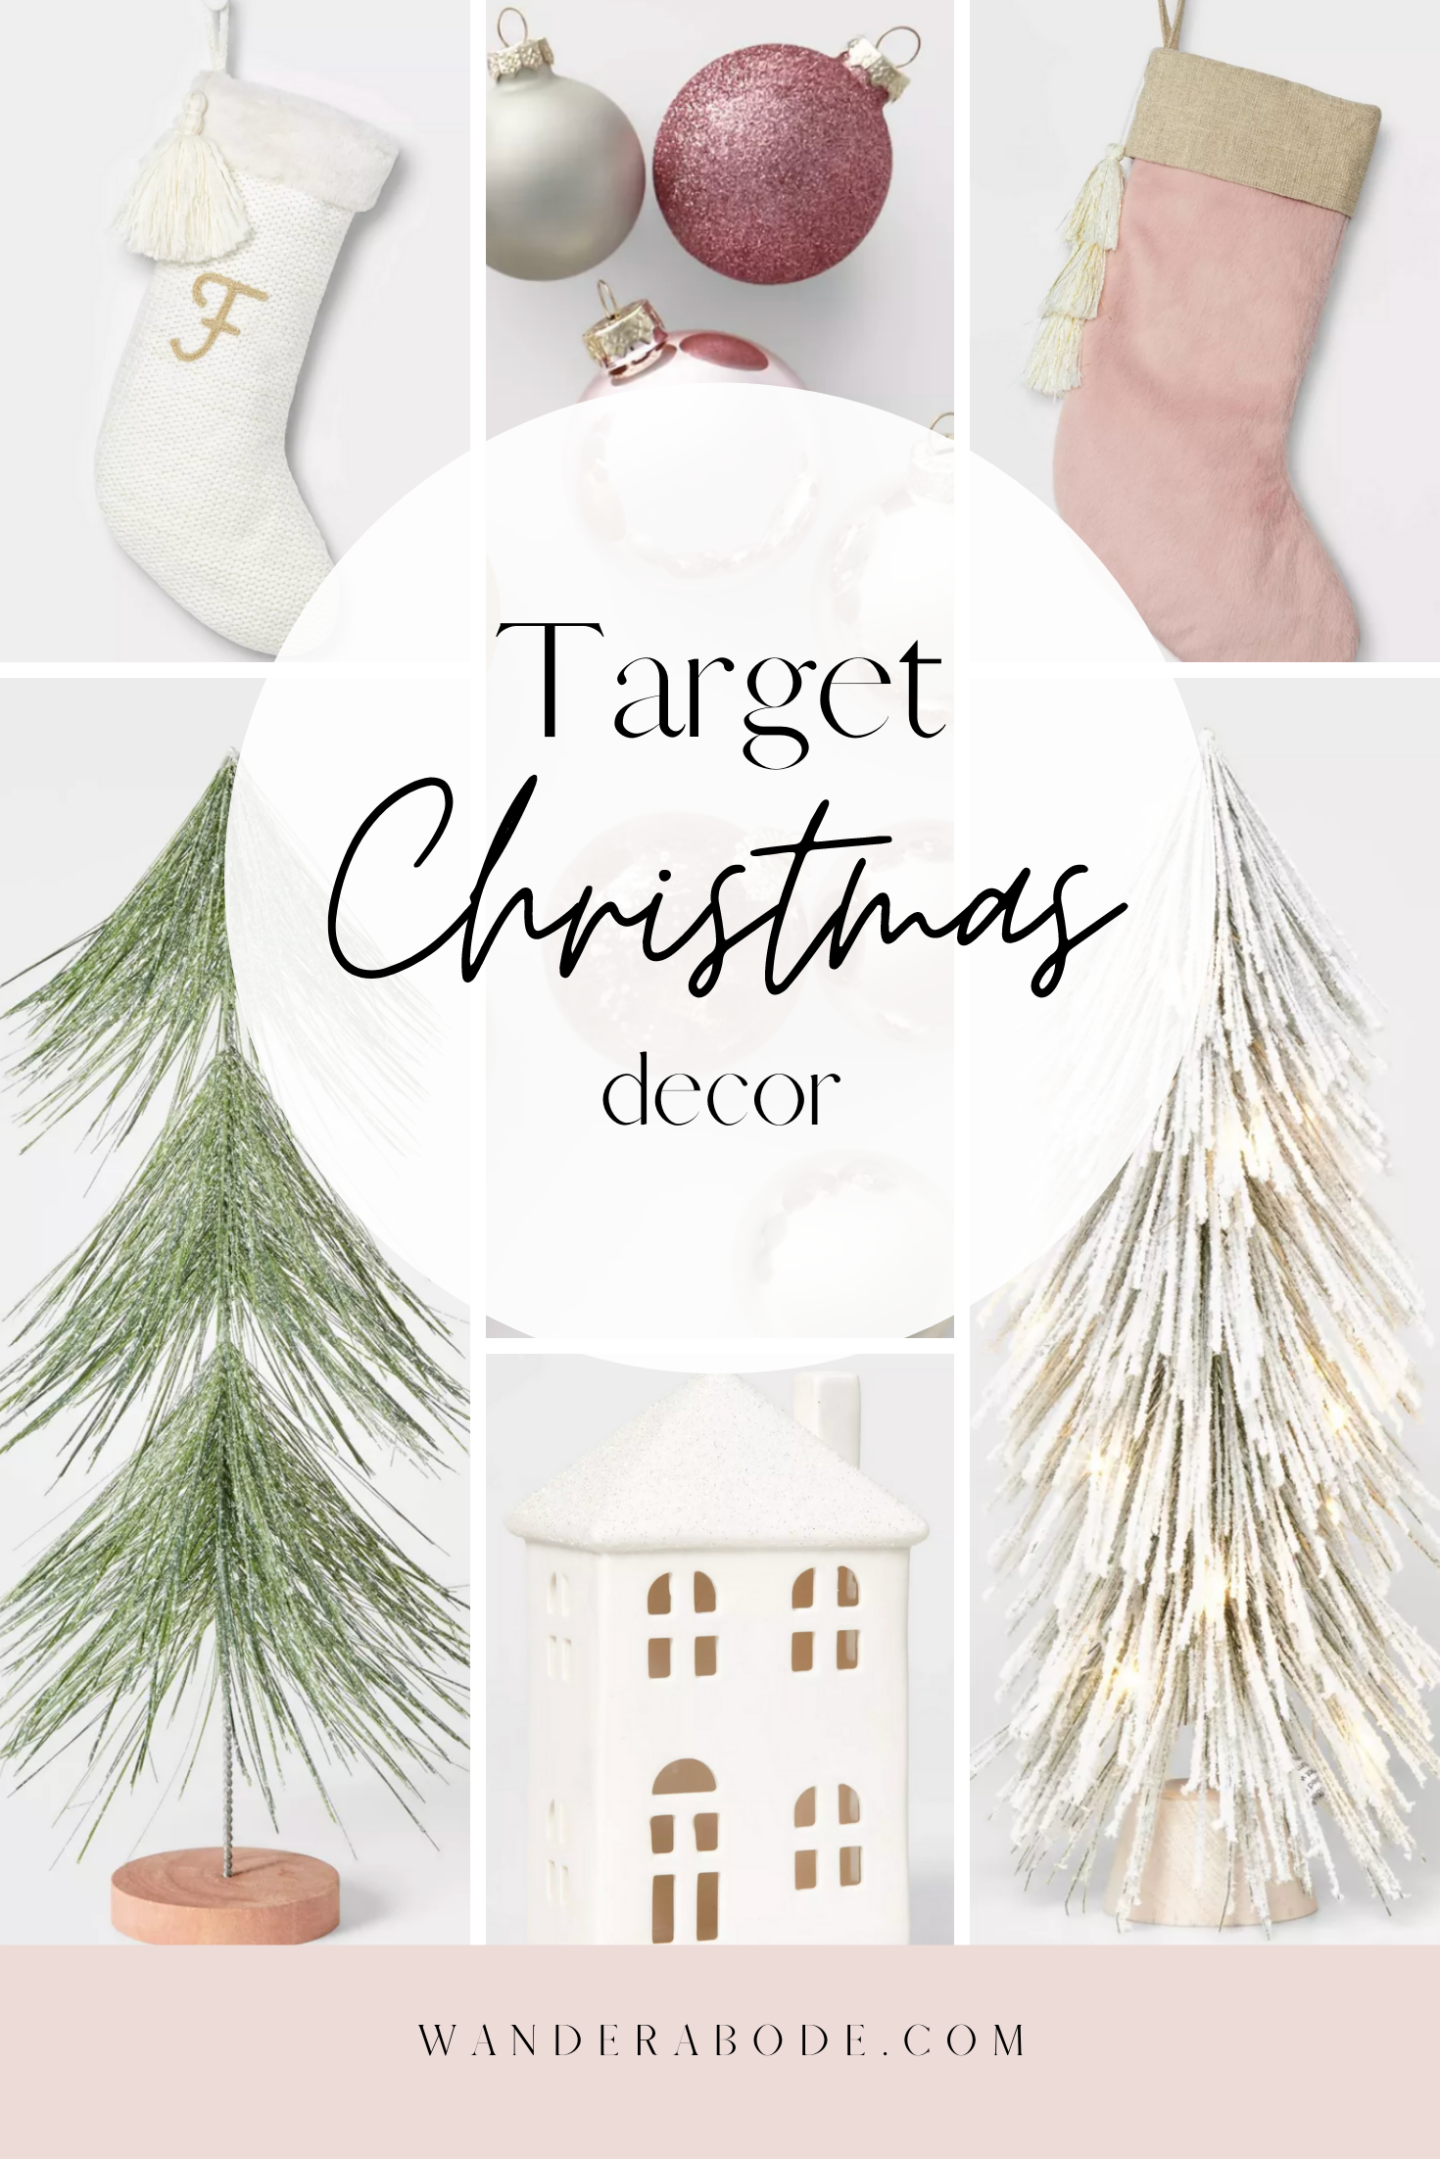 THE BEST OF TARGET CHRISTMAS DECOR 2020